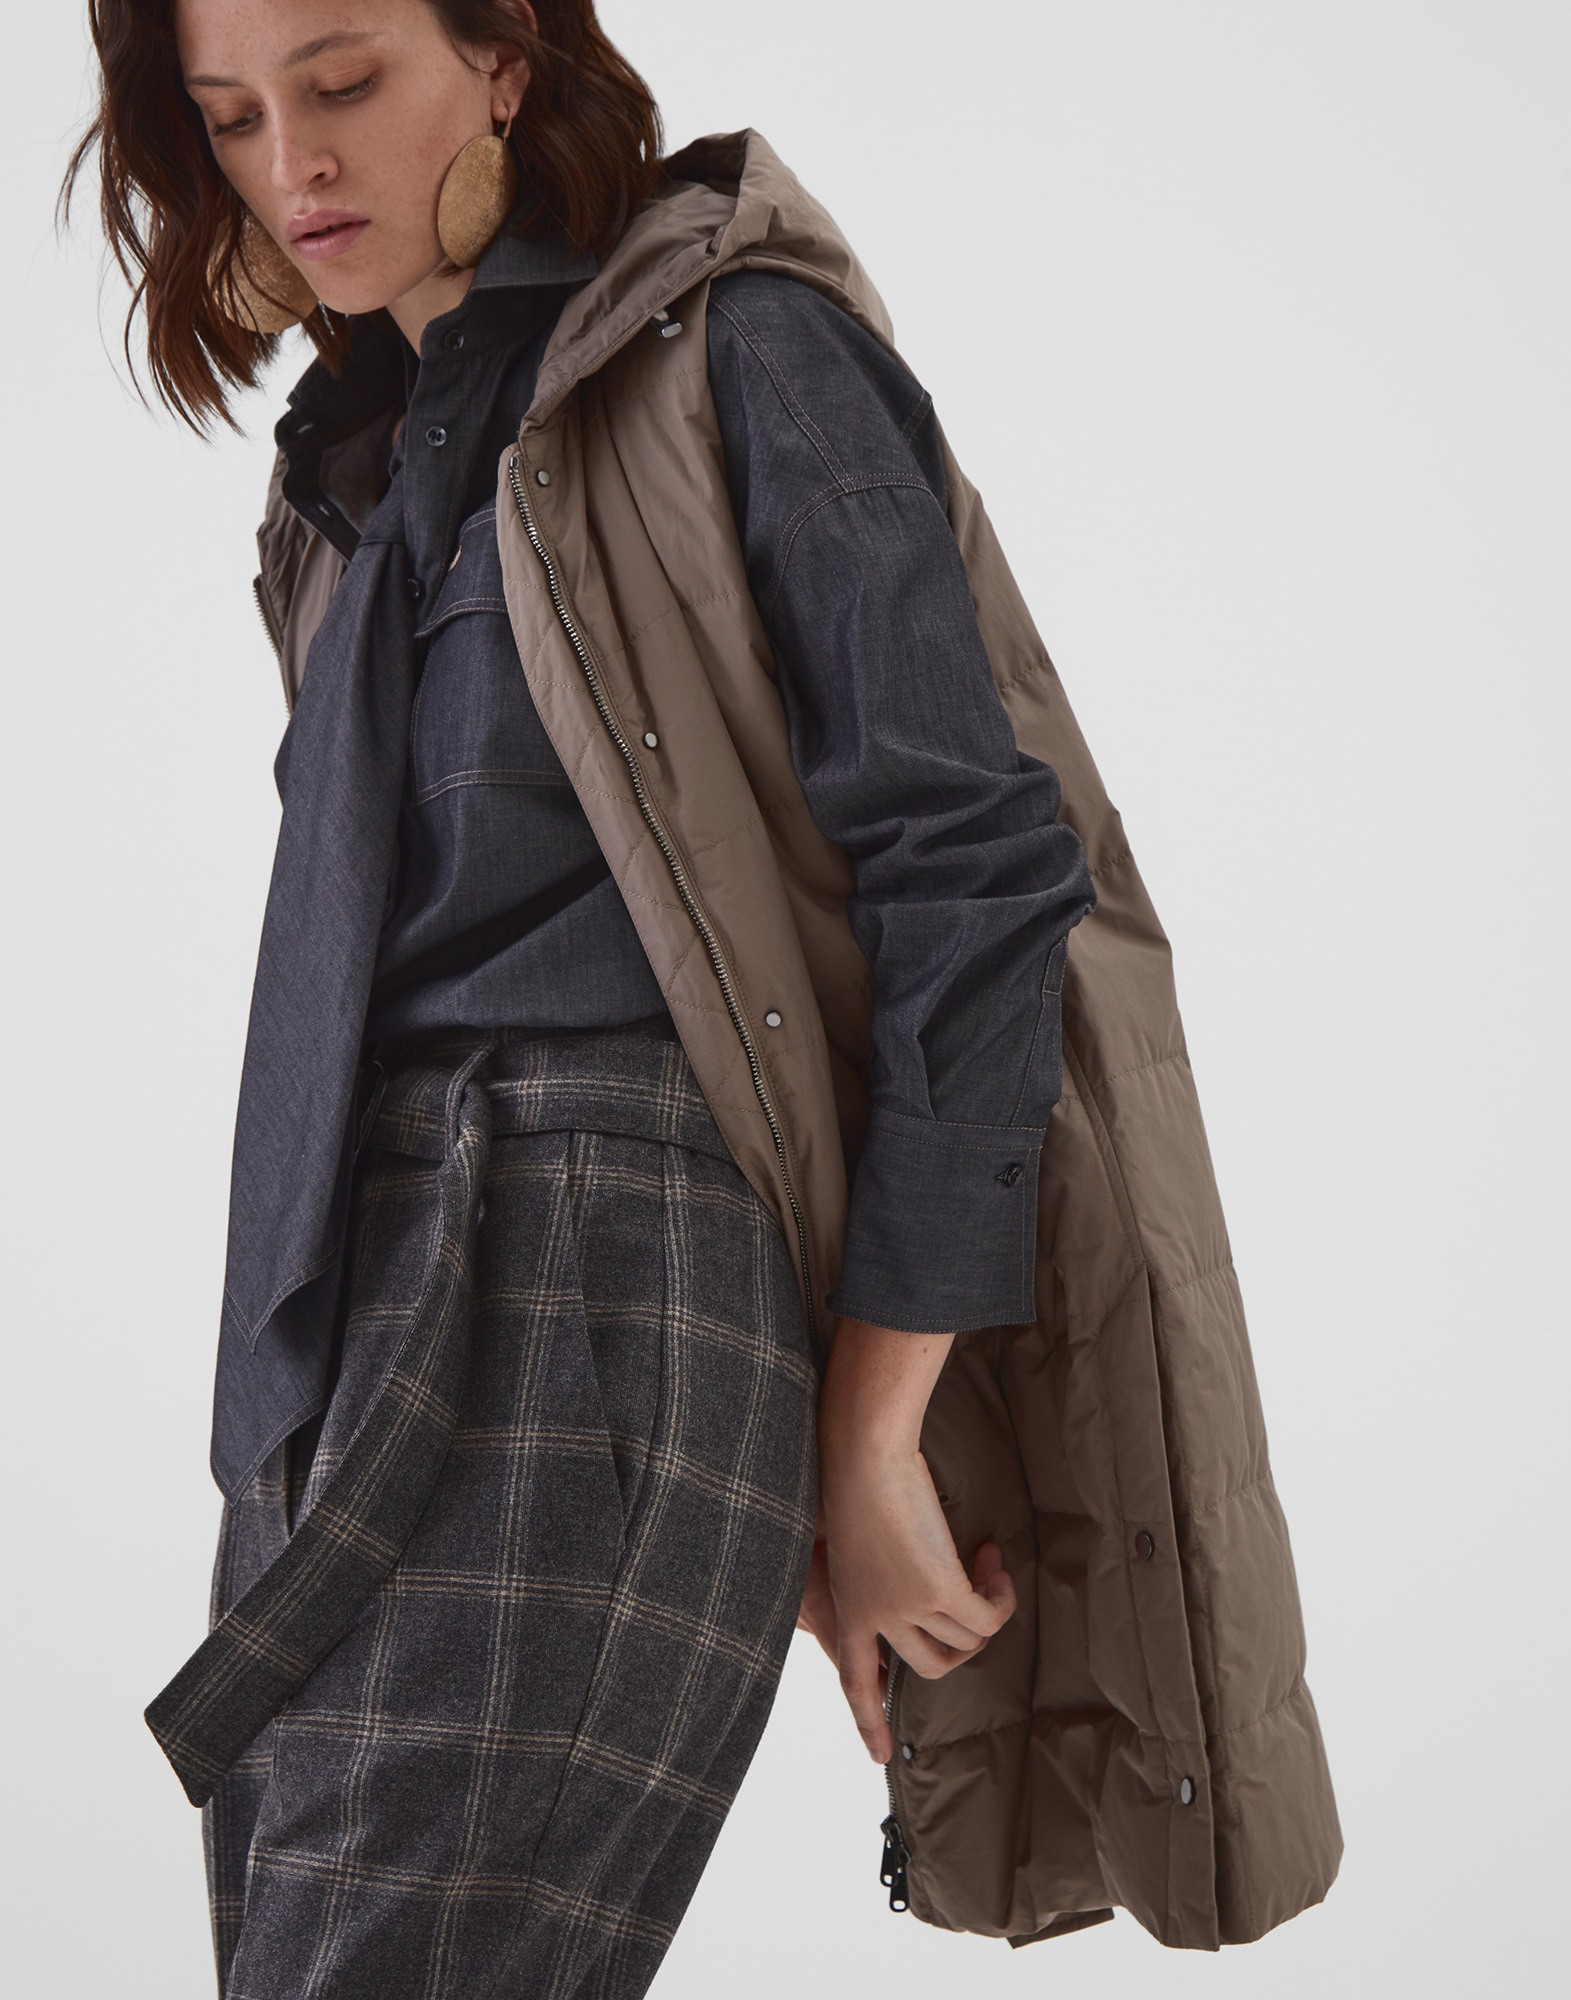 Knit Outerwear Brown Woman 4 - Brunello Cucinelli